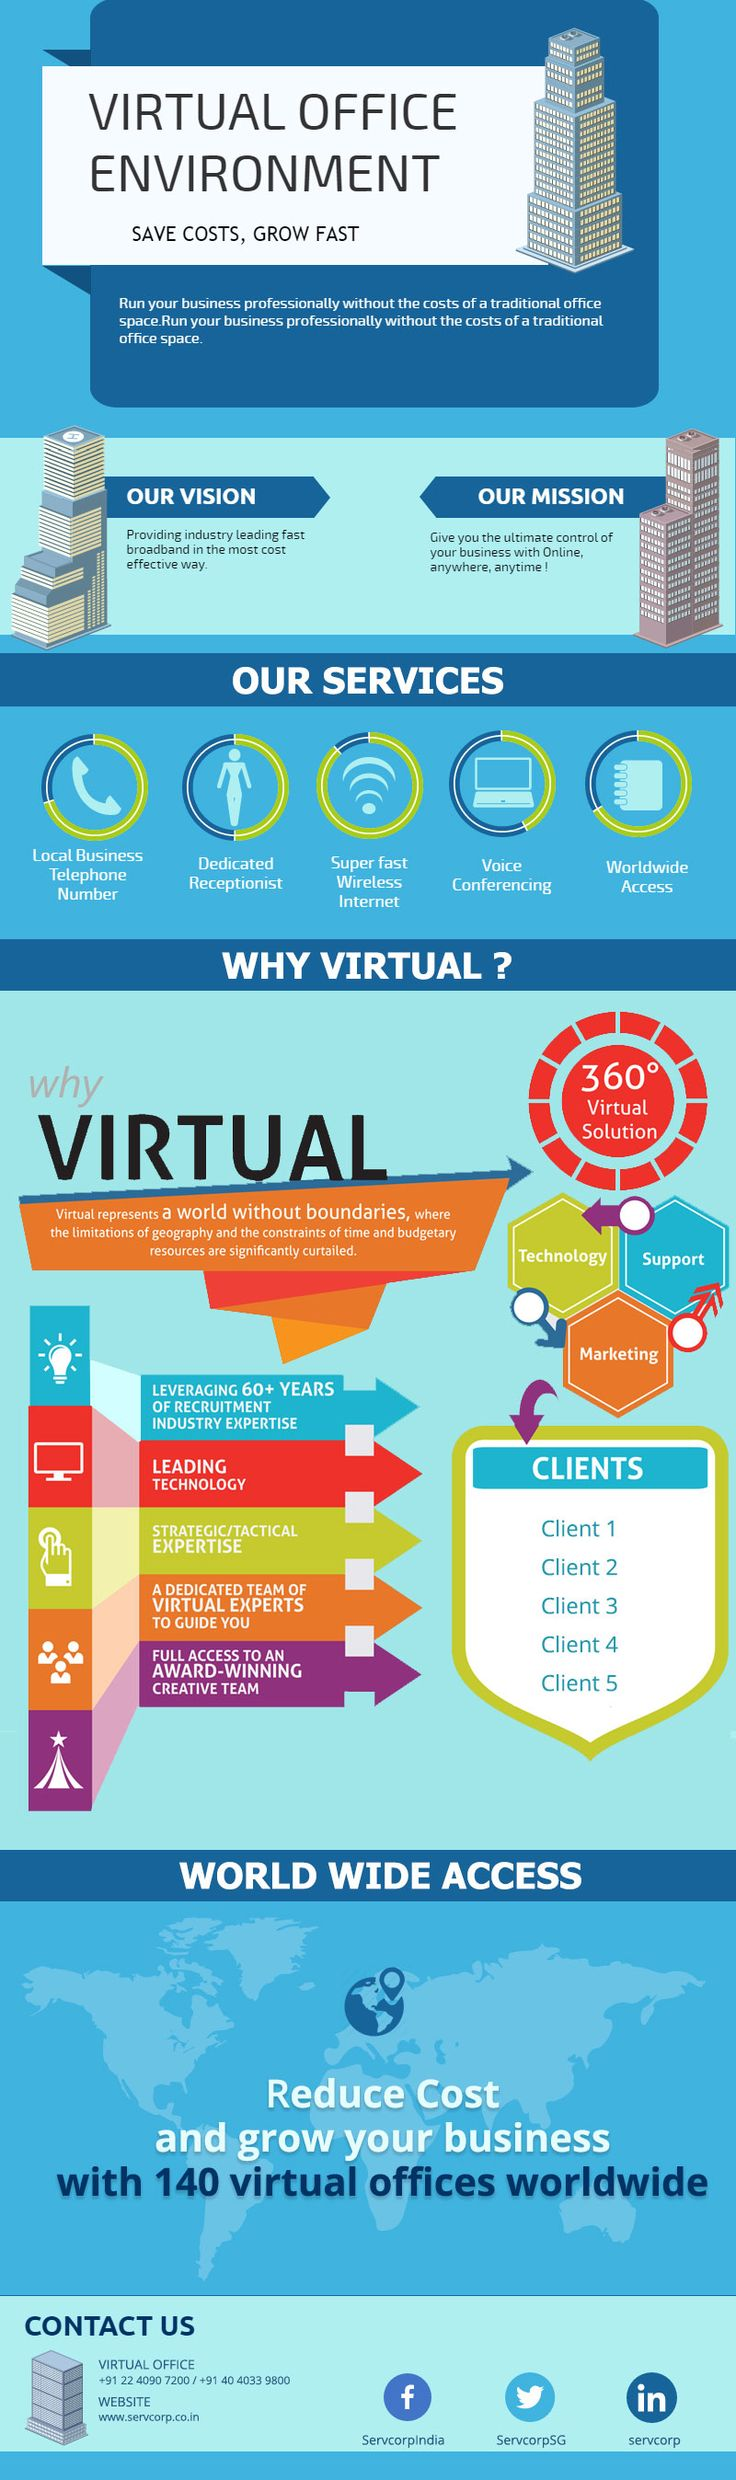 A virtual office provides communication and address services without providing dedicated office space. This infographic describes Servcorp's  virtual office space services and solutions